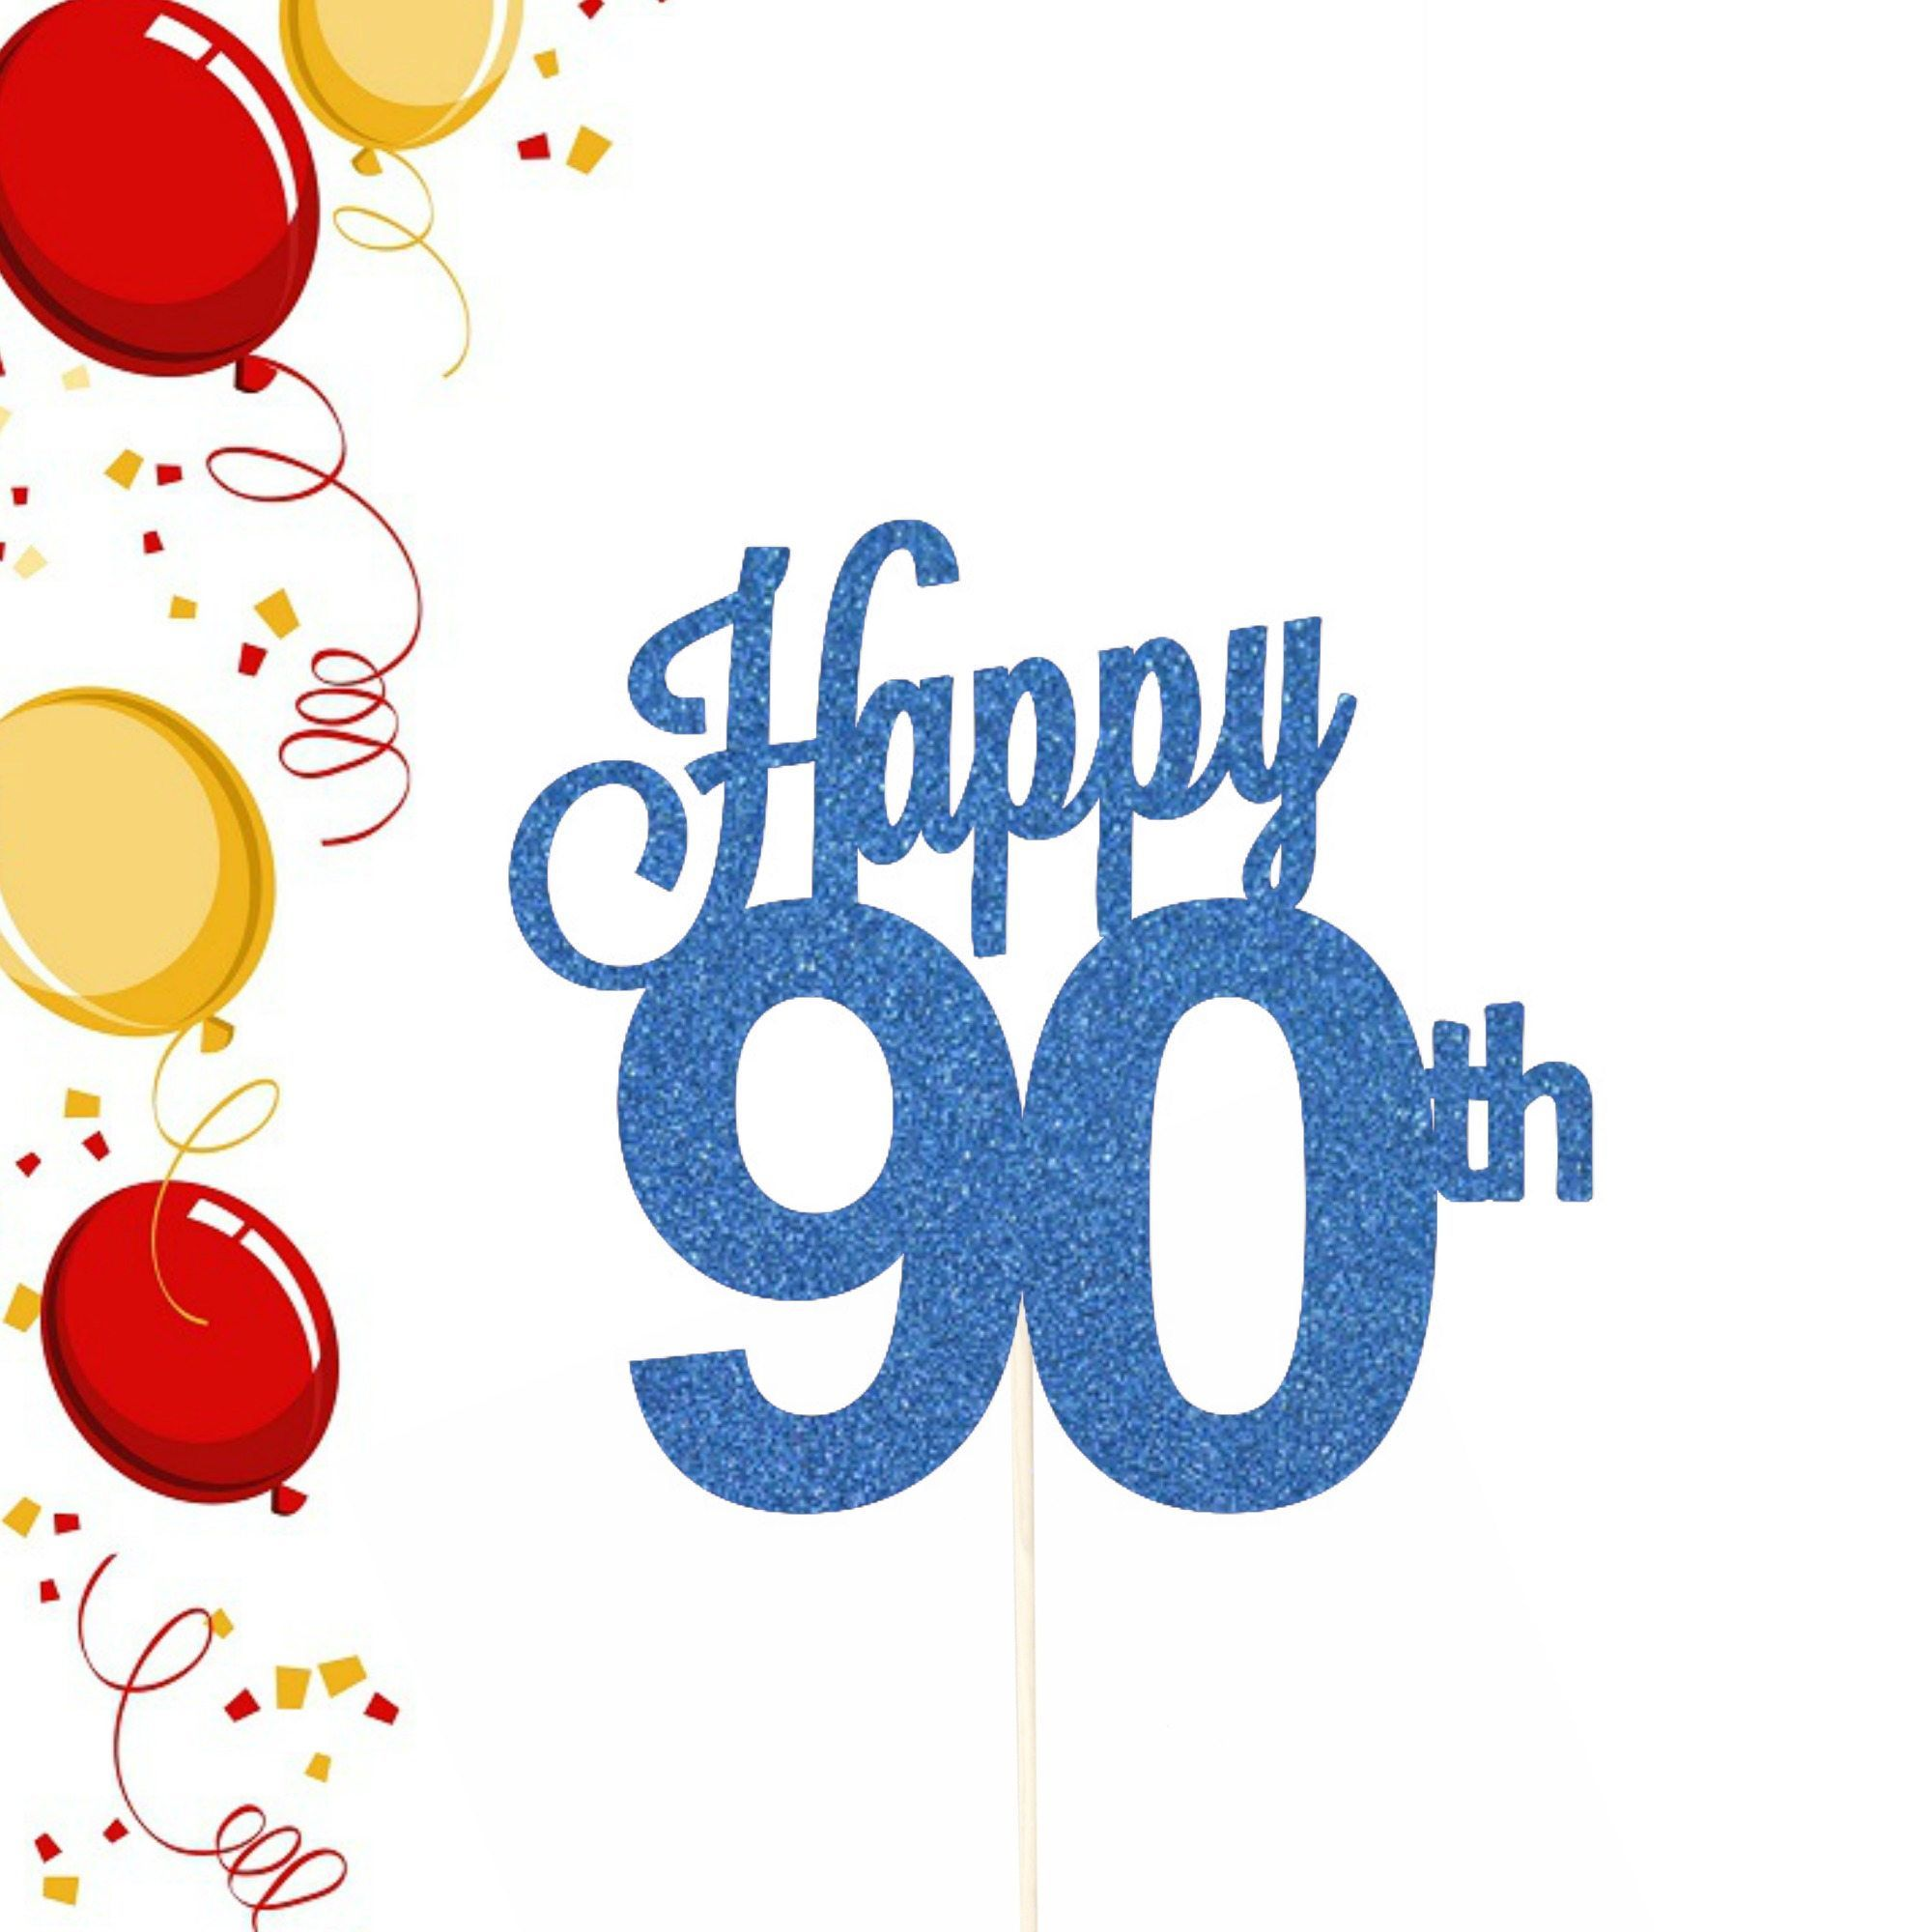 Happy 90th birthday clipart 1 » Clipart Portal.